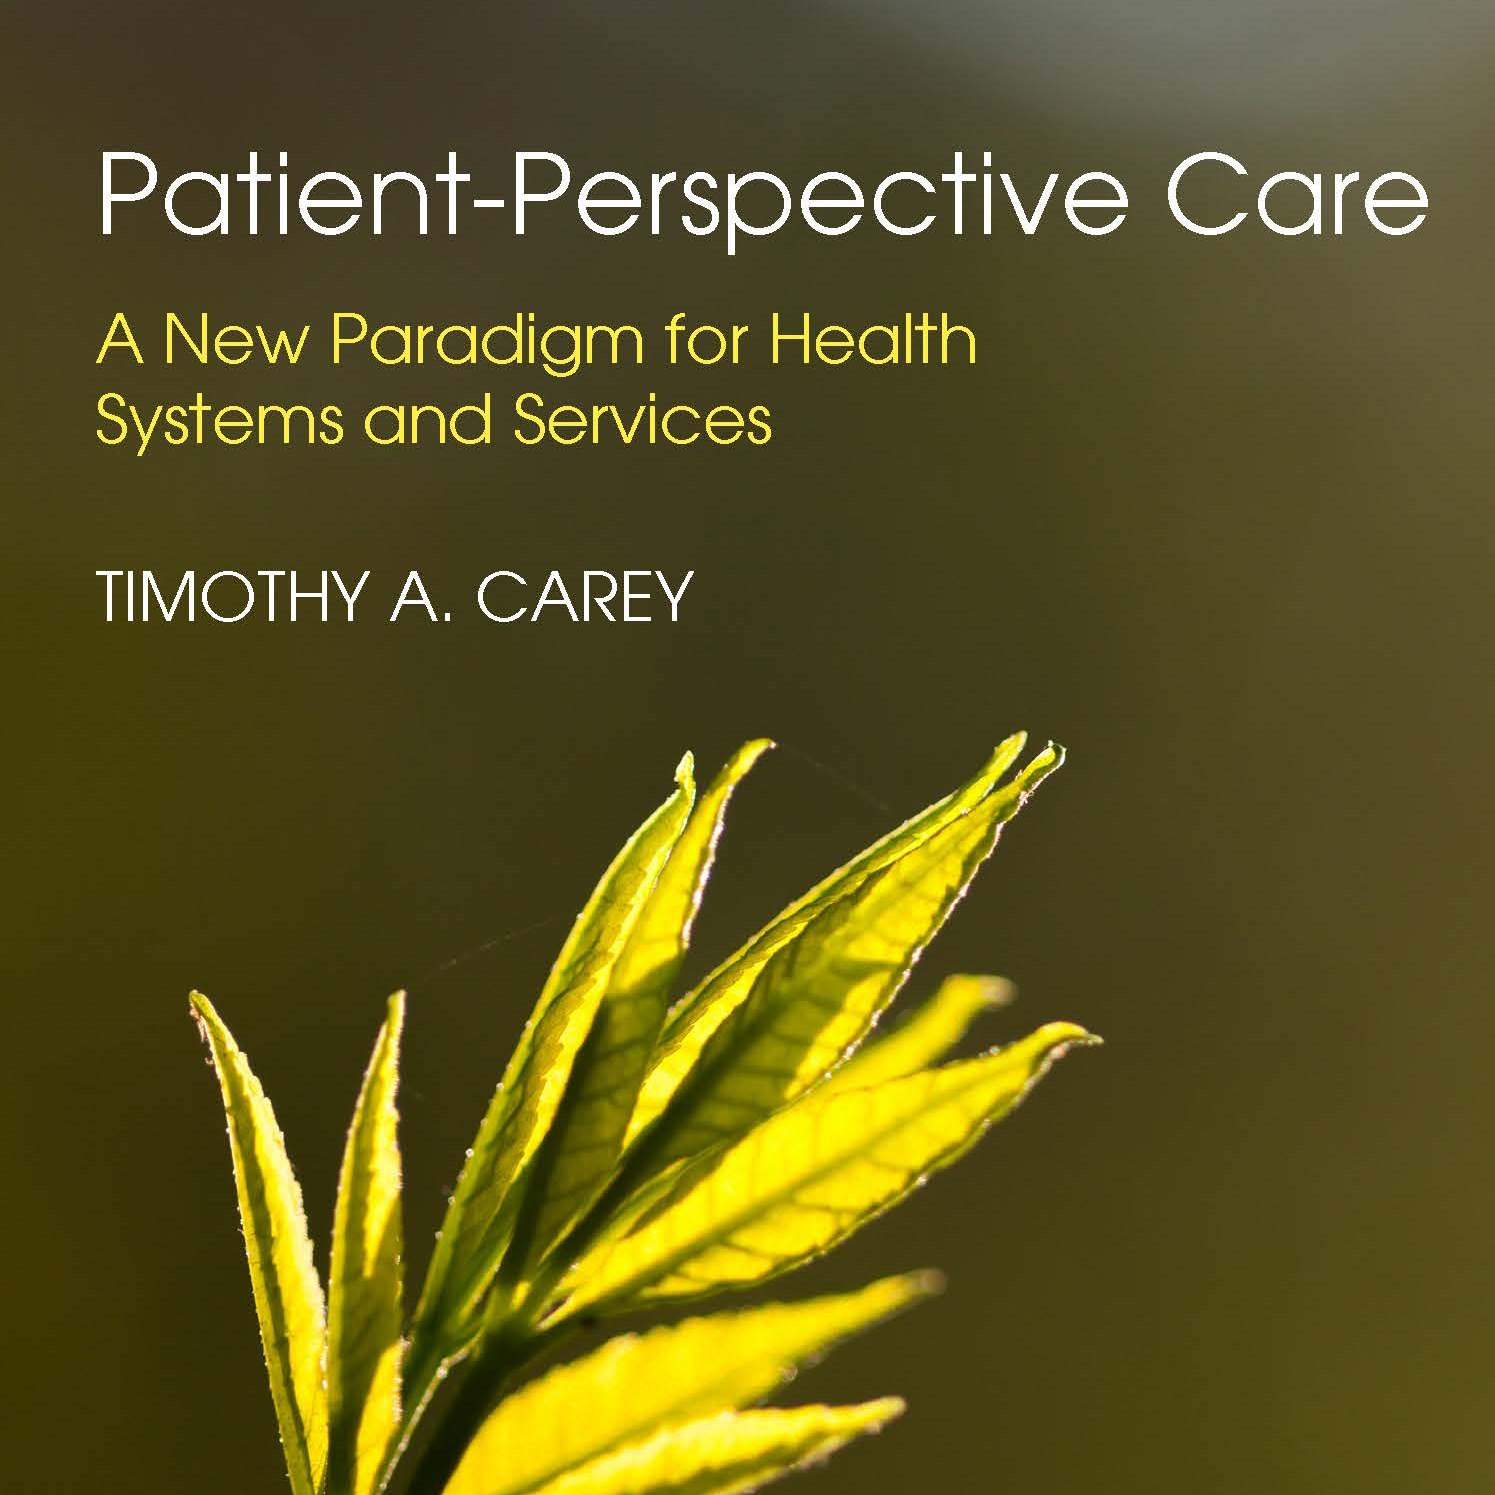 Patient-Perspective Care by Professor Tim Carey